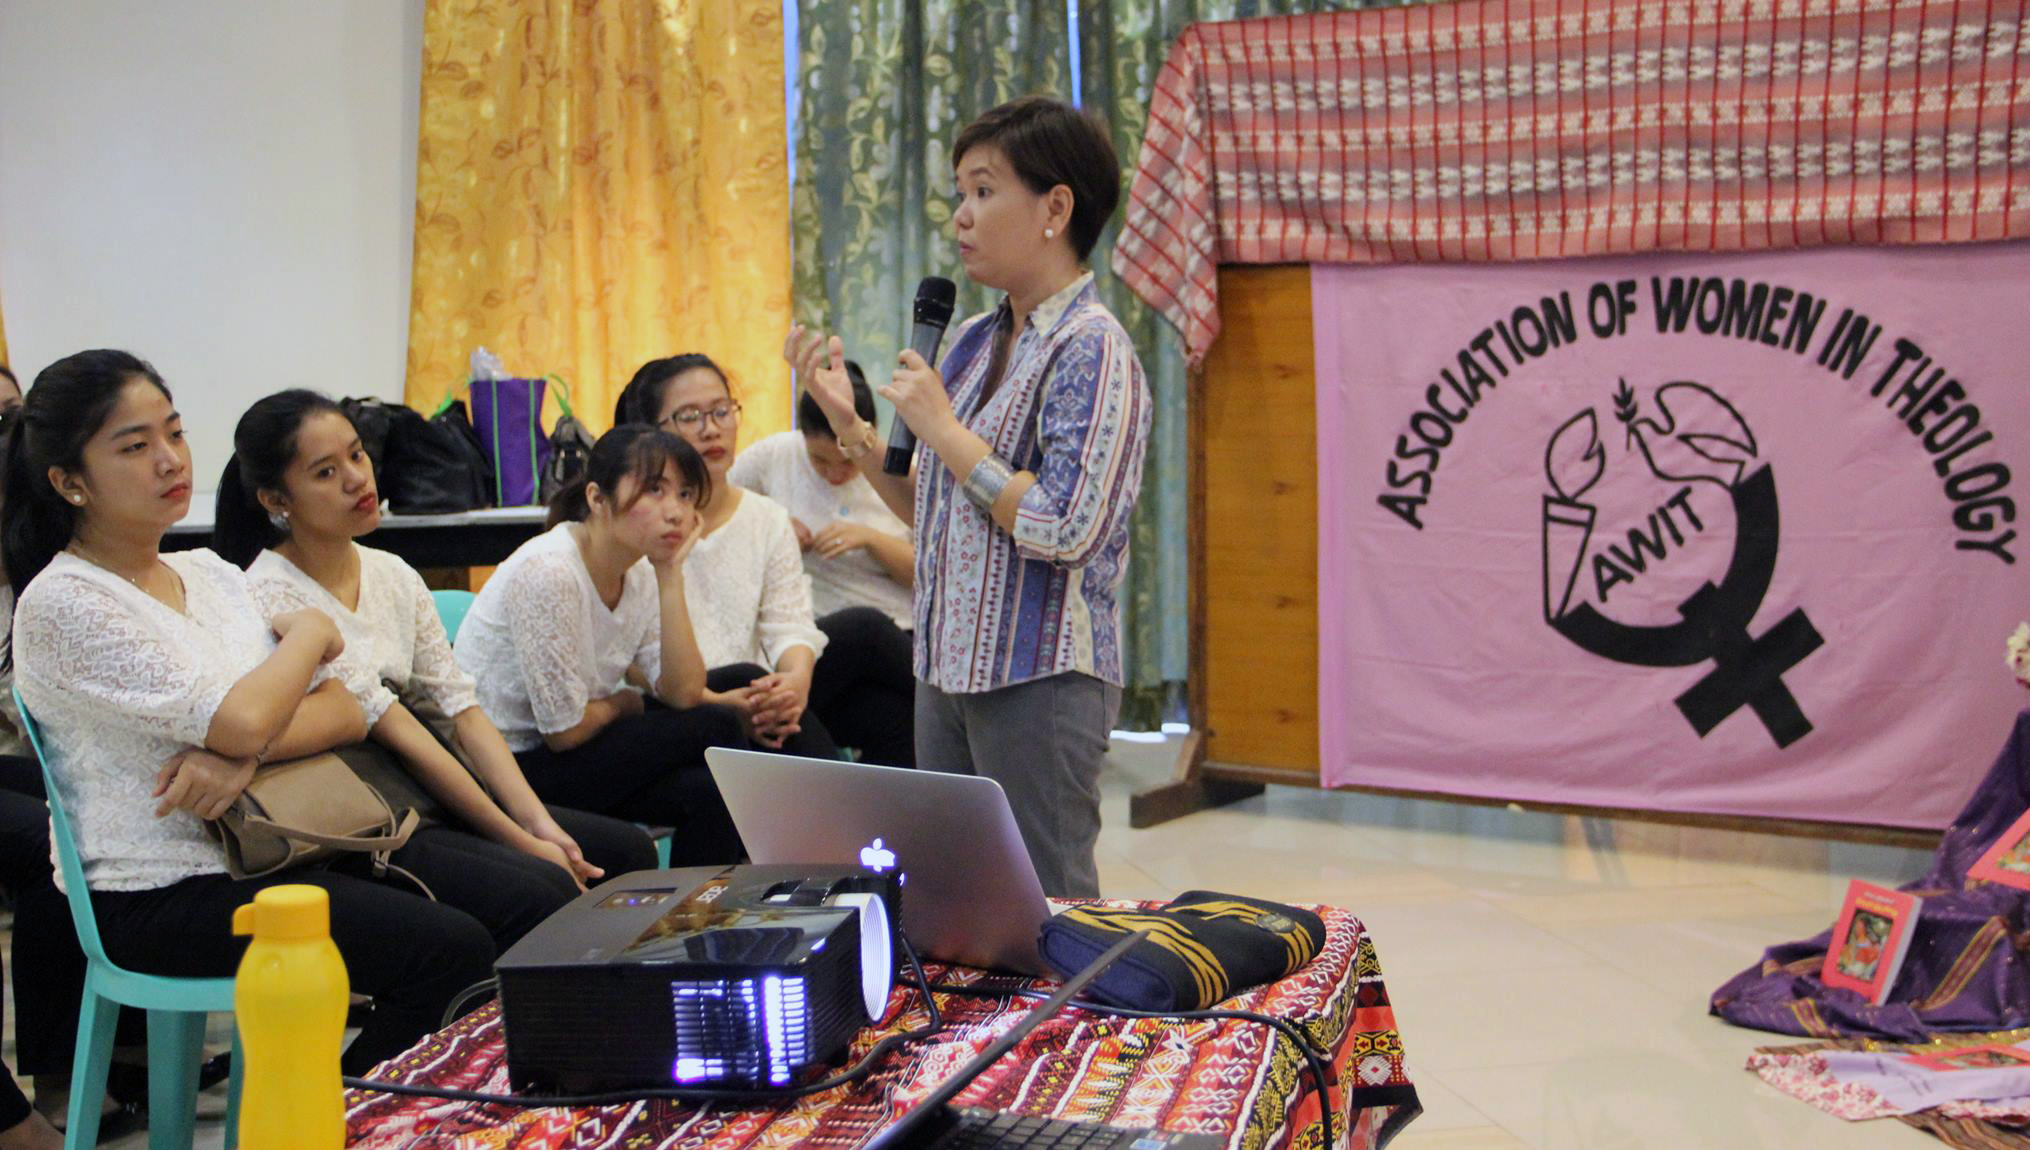 """violence against women in the philippines View violence against women in the philippines from aa 1233 at university of la salette a deeper look at violence against women (vaw): the philippine case 1 """"violence against women is perhaps the."""